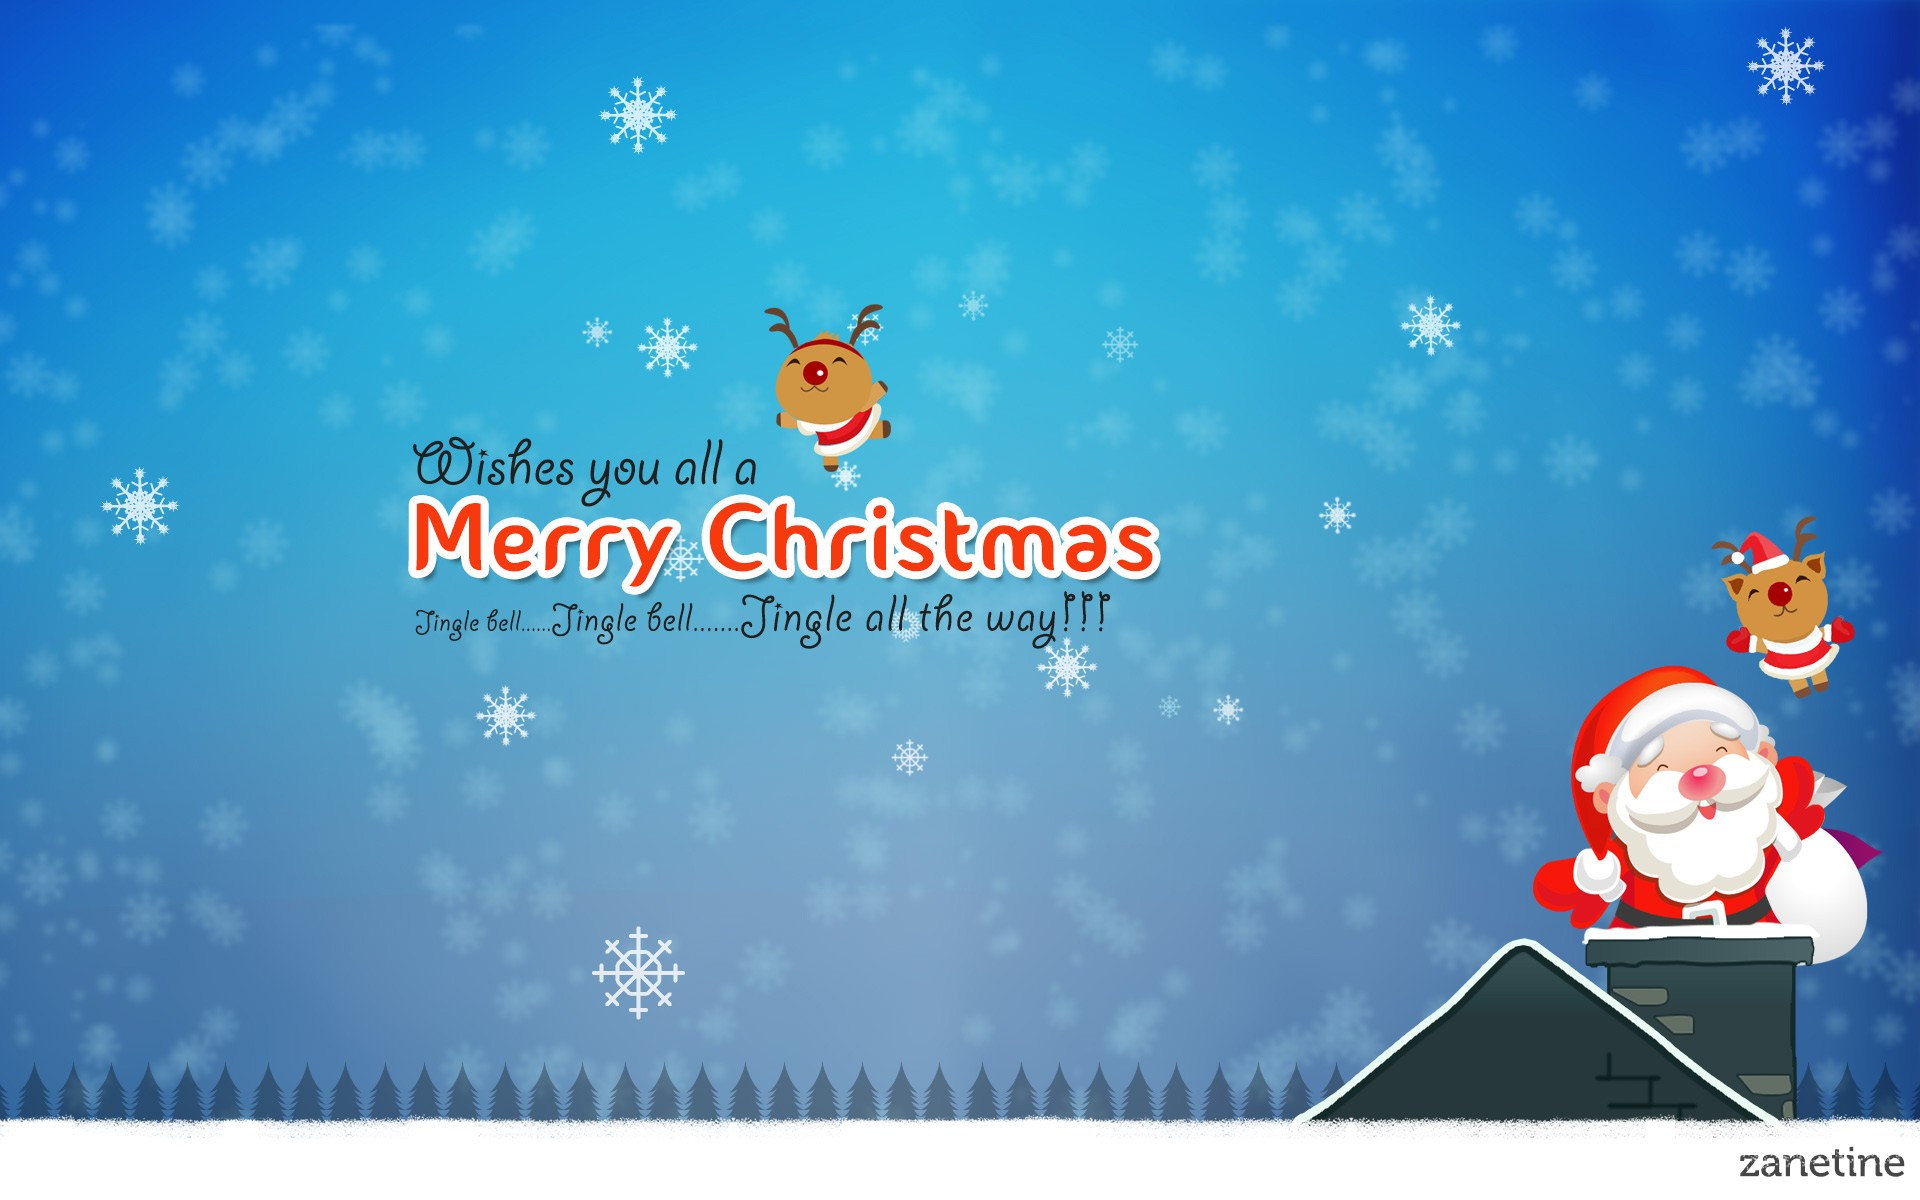 Merry Christmas Jingle Bells Wallpapers HD Wallpapers